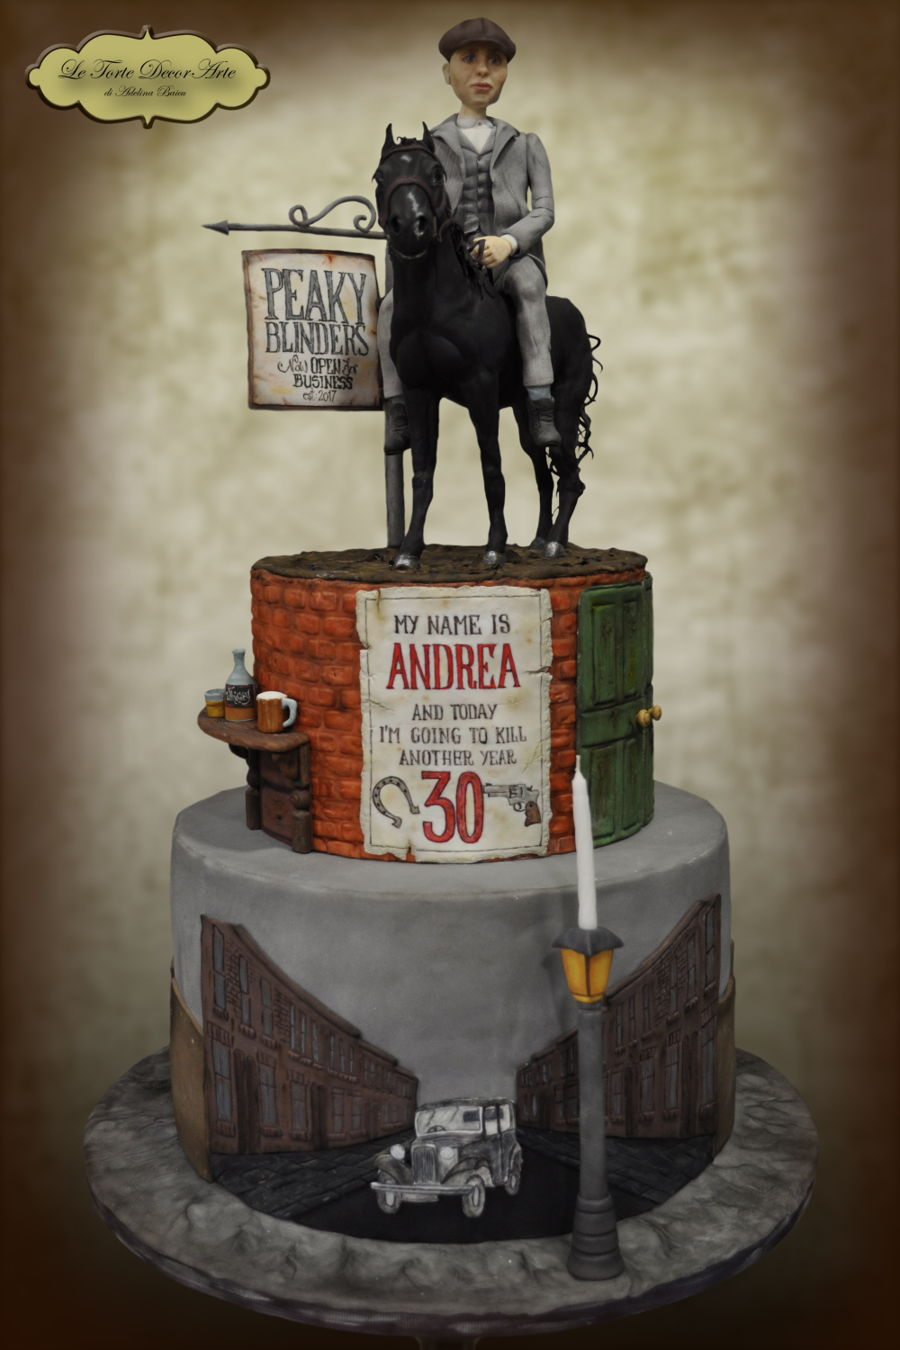 Peaky Blinders Themed Cake Cakecentral Com